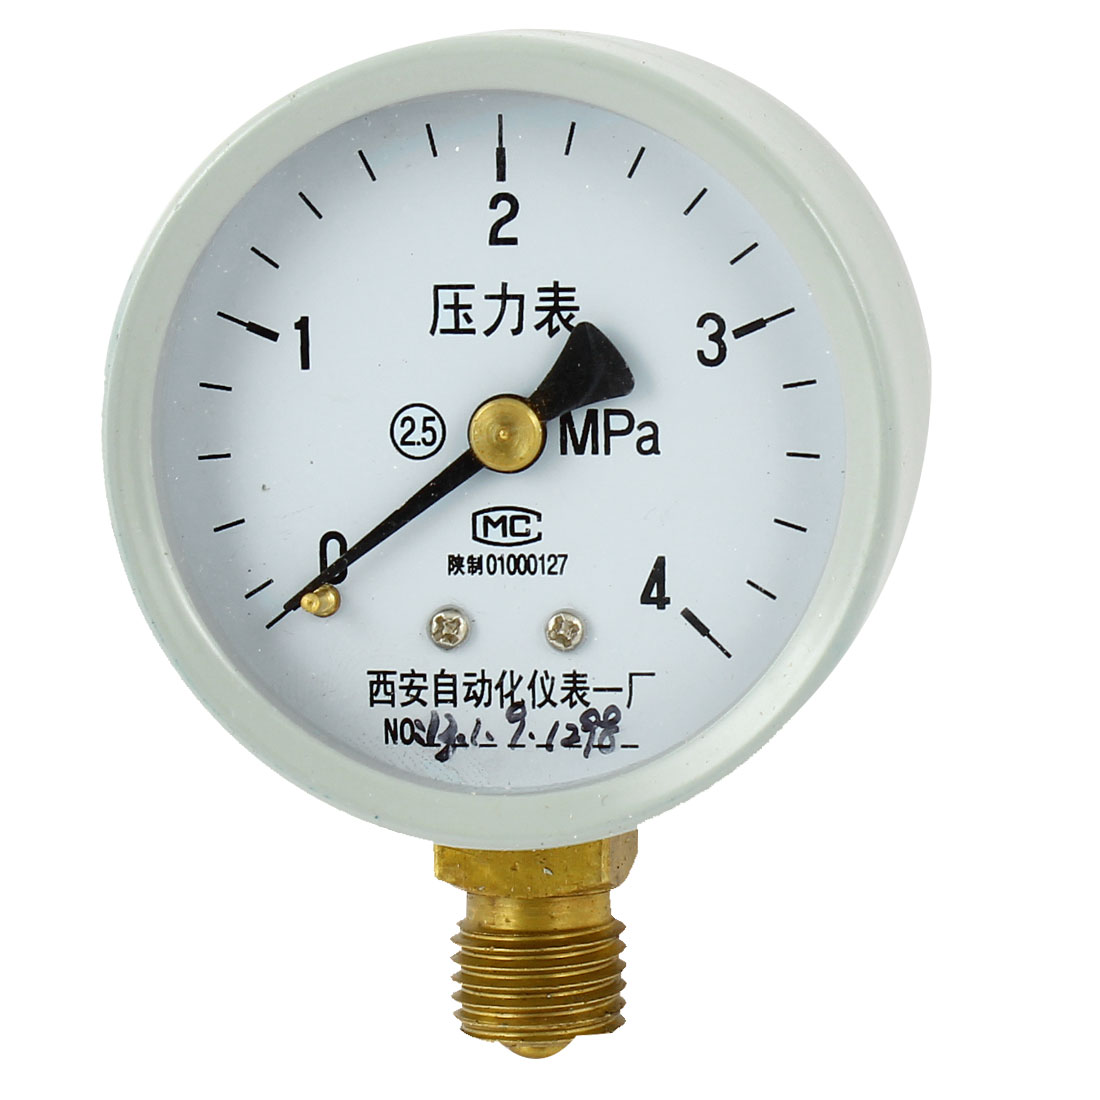 1/4PT Male Threaded 0-4Mpa Pneumatic Air Pressure Measuring Gauge Light Gray